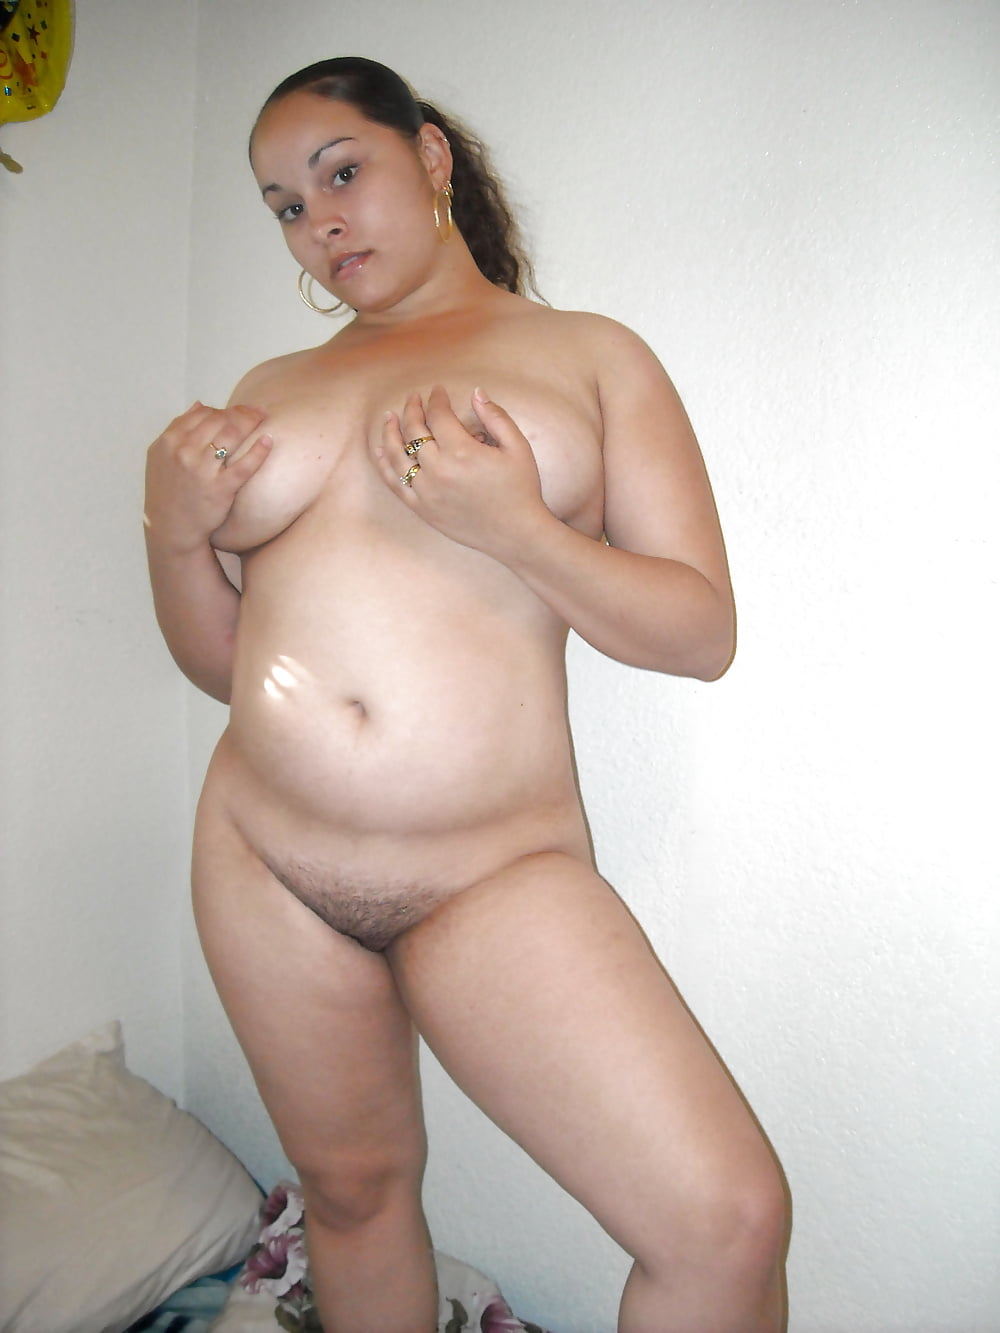 chubby-mexican-female-naked